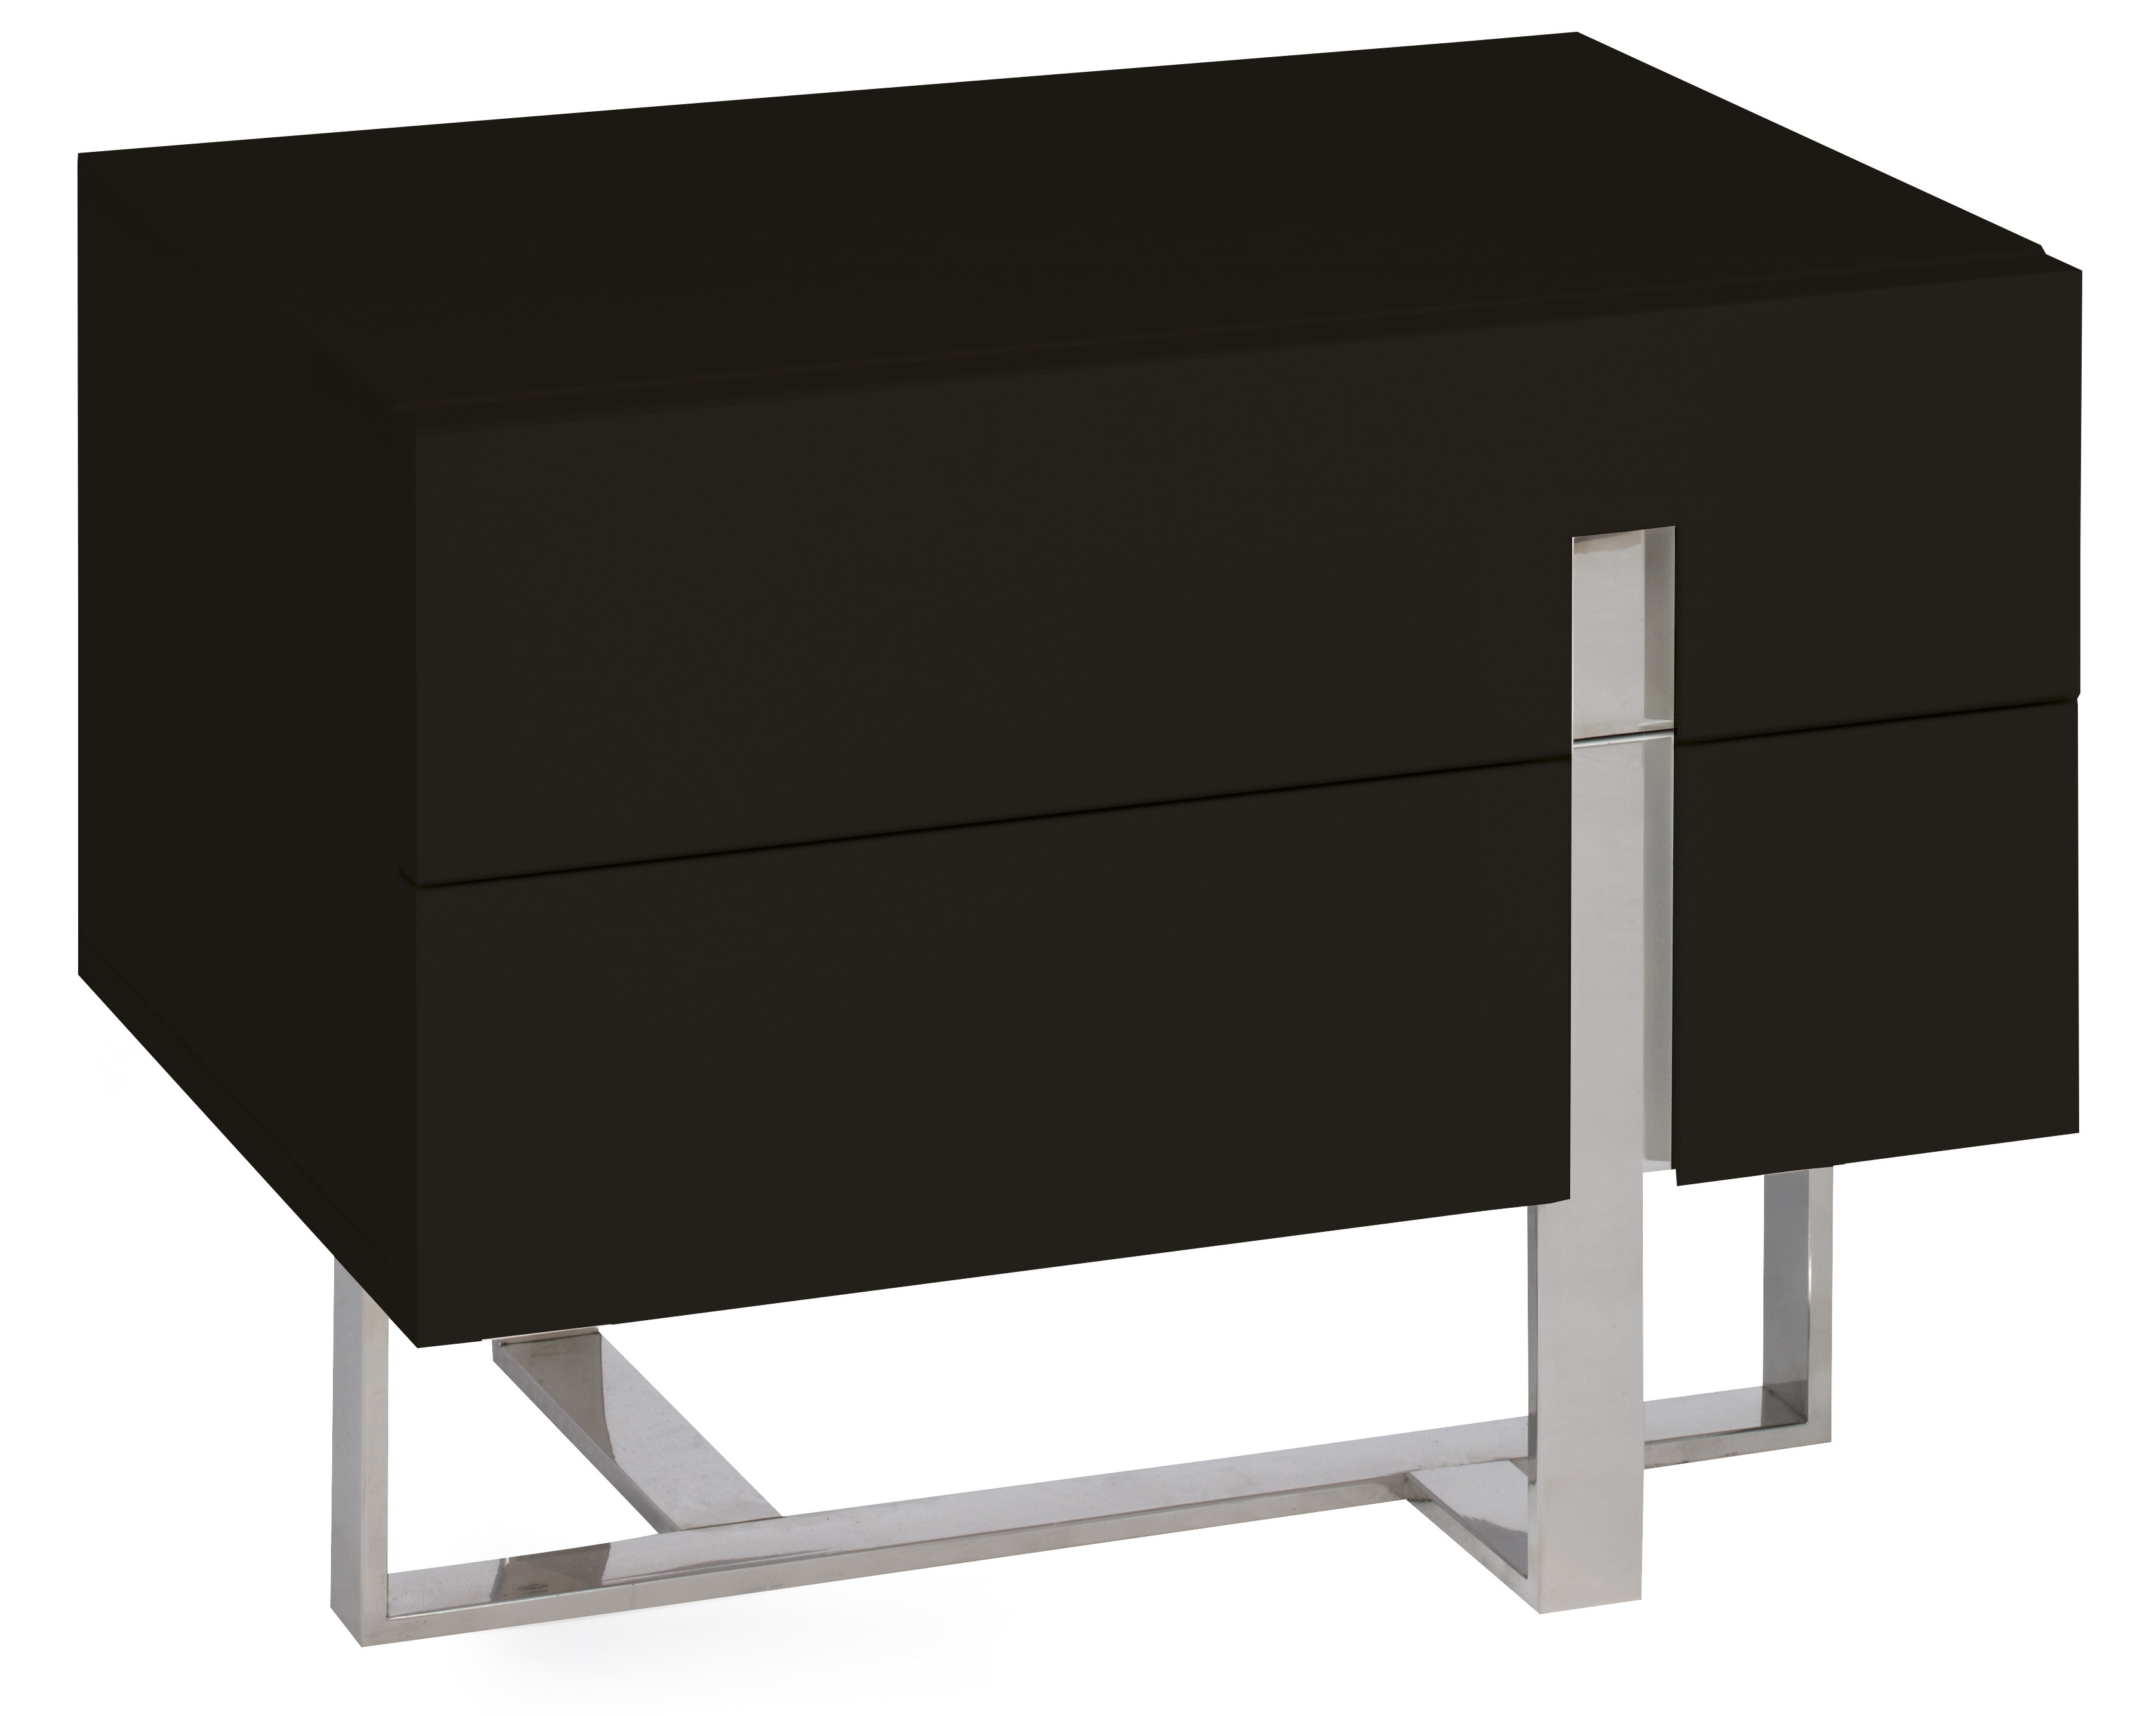 les tendances table de chevet moderne noir laqu et acier dezina. Black Bedroom Furniture Sets. Home Design Ideas